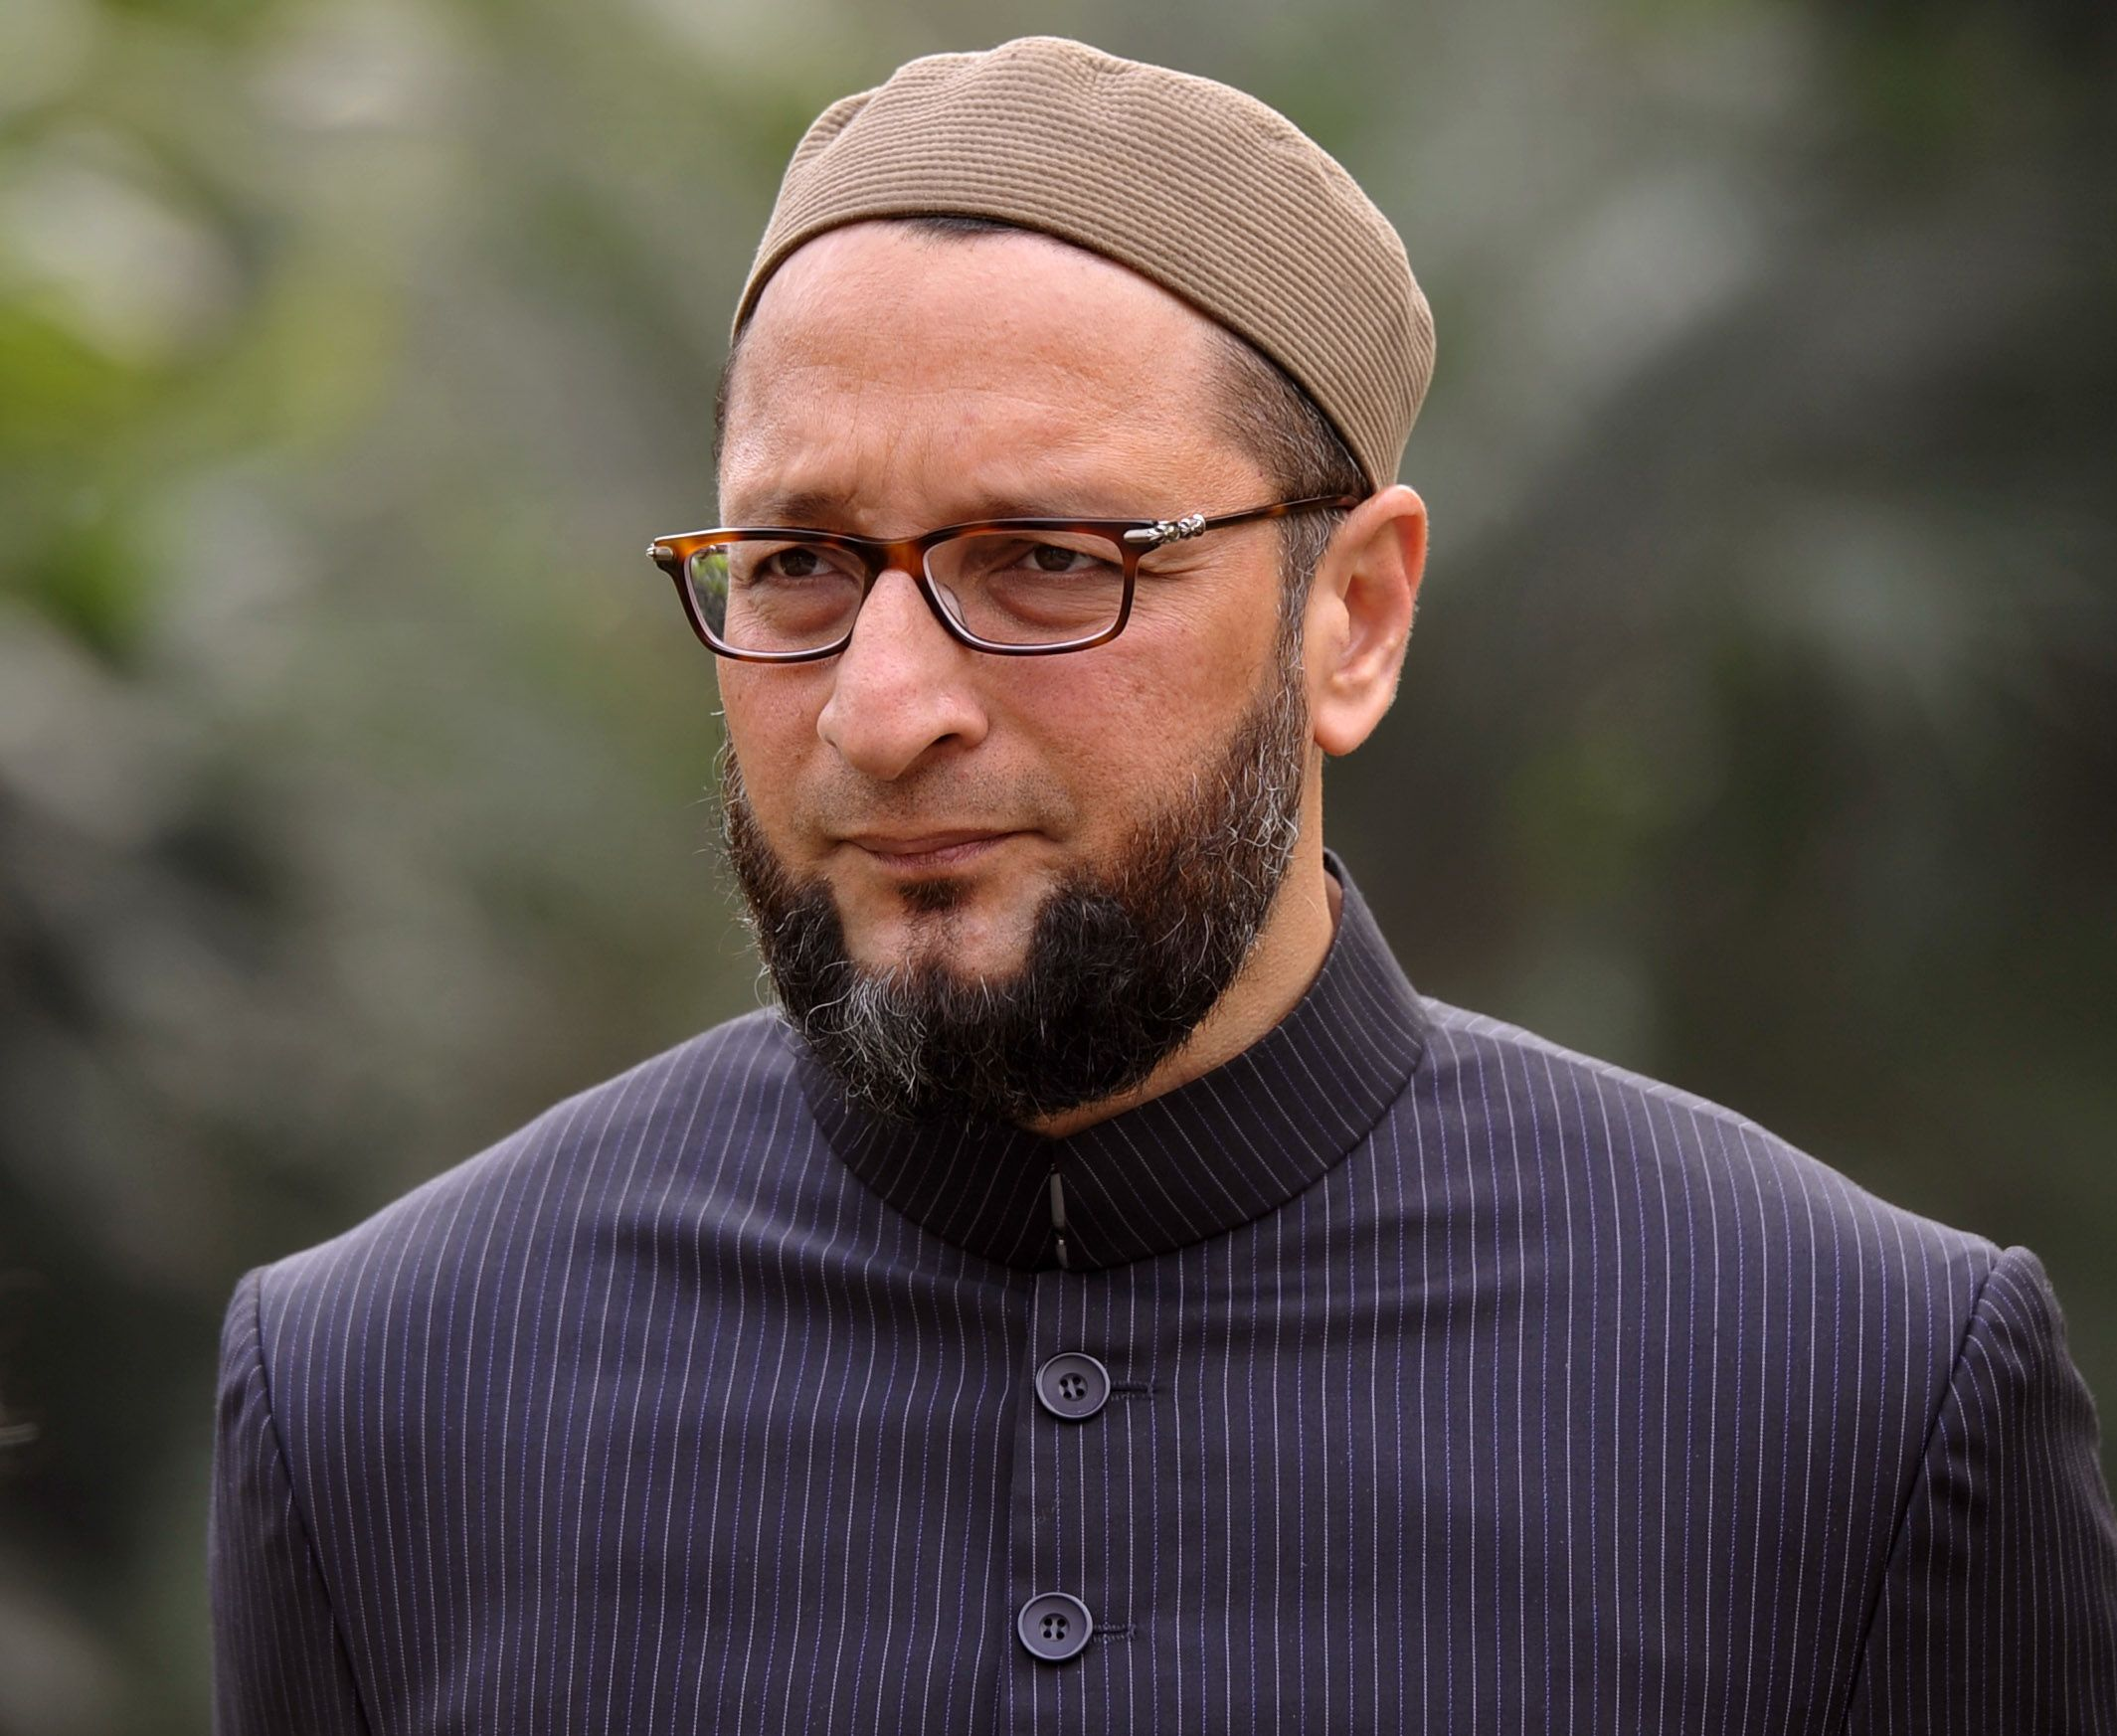 Its police retaliation: Owaisi Read complete story click here http://www.thehansindia.com/posts/index/2015-04-08/Its-police-retaliation-Owaisi-142776